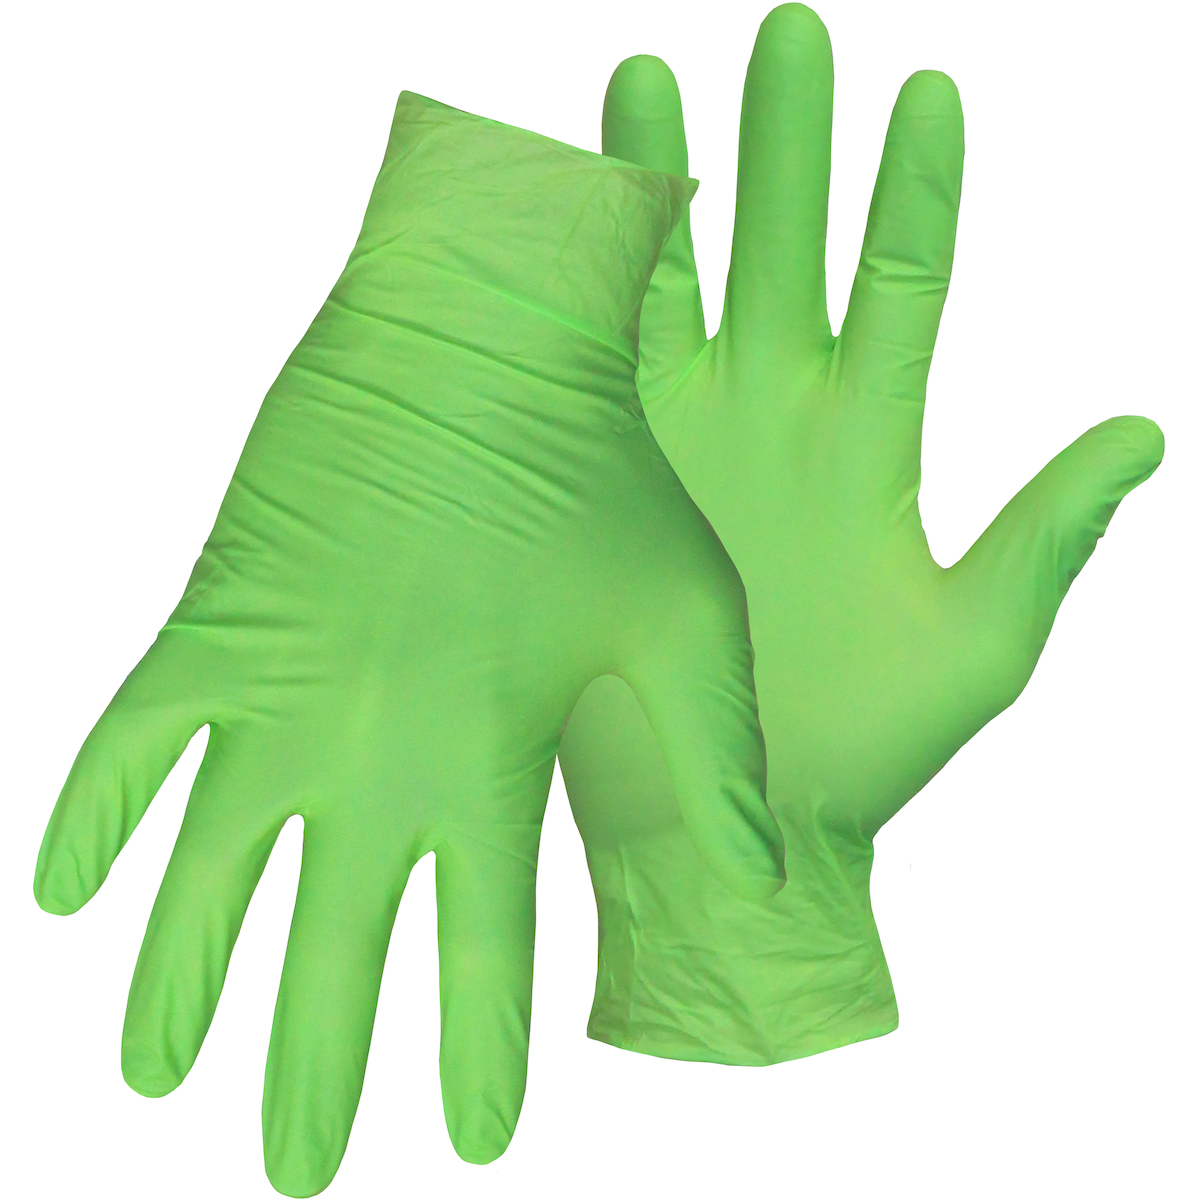 """Lightly Textured 4 Mil High-Vis. Green Disposable Nitrile Gloves 10"""" Long With Rolled Cuff - Powder-Free, Green, M"""